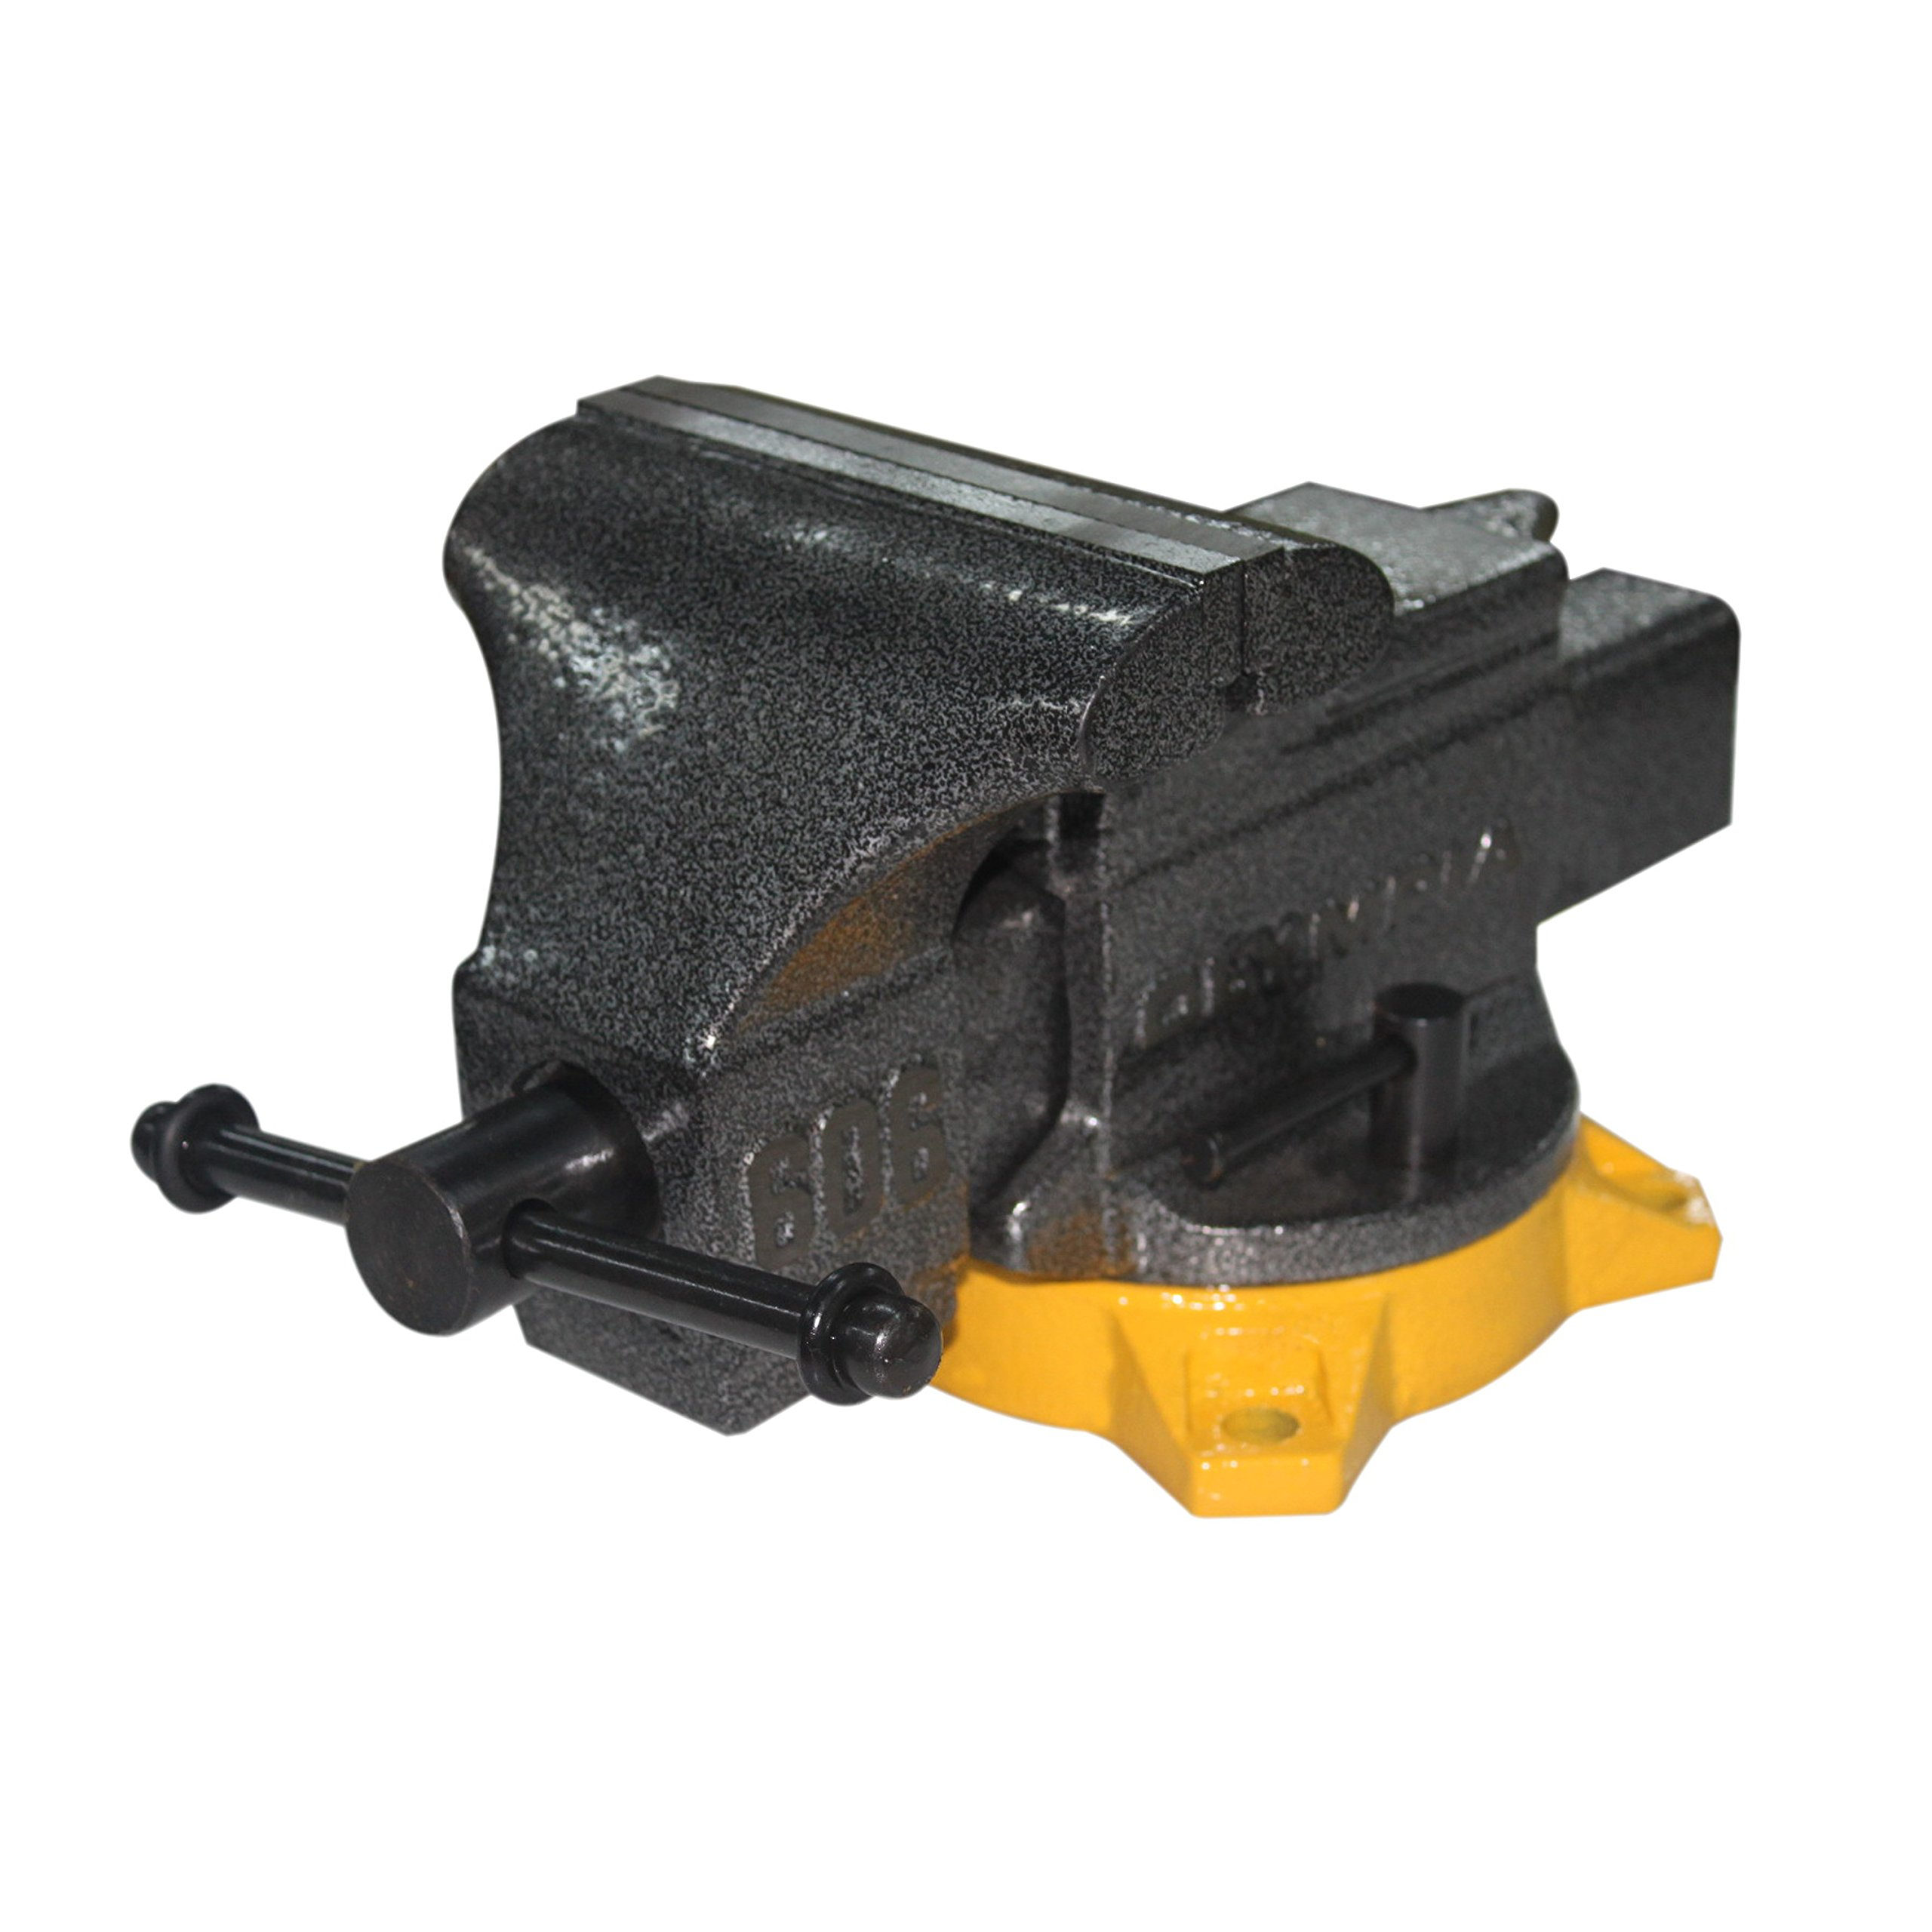 Olympia Tool 38-606 6-Inch Bench Vise